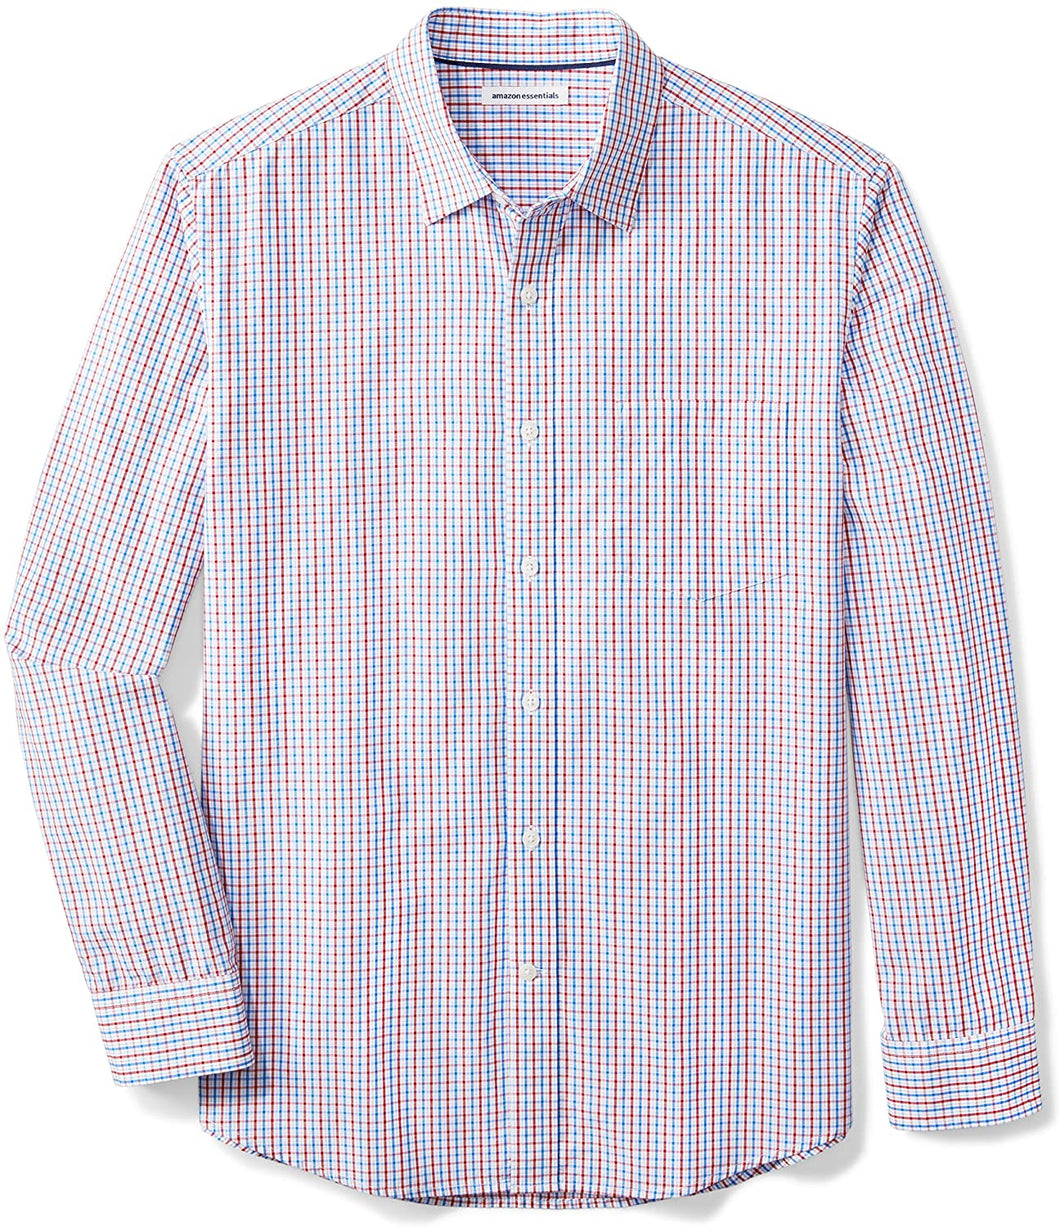 Amazon Essentials Men's Regular-Fit Long-Sleeve Plaid Casual Poplin Shirt